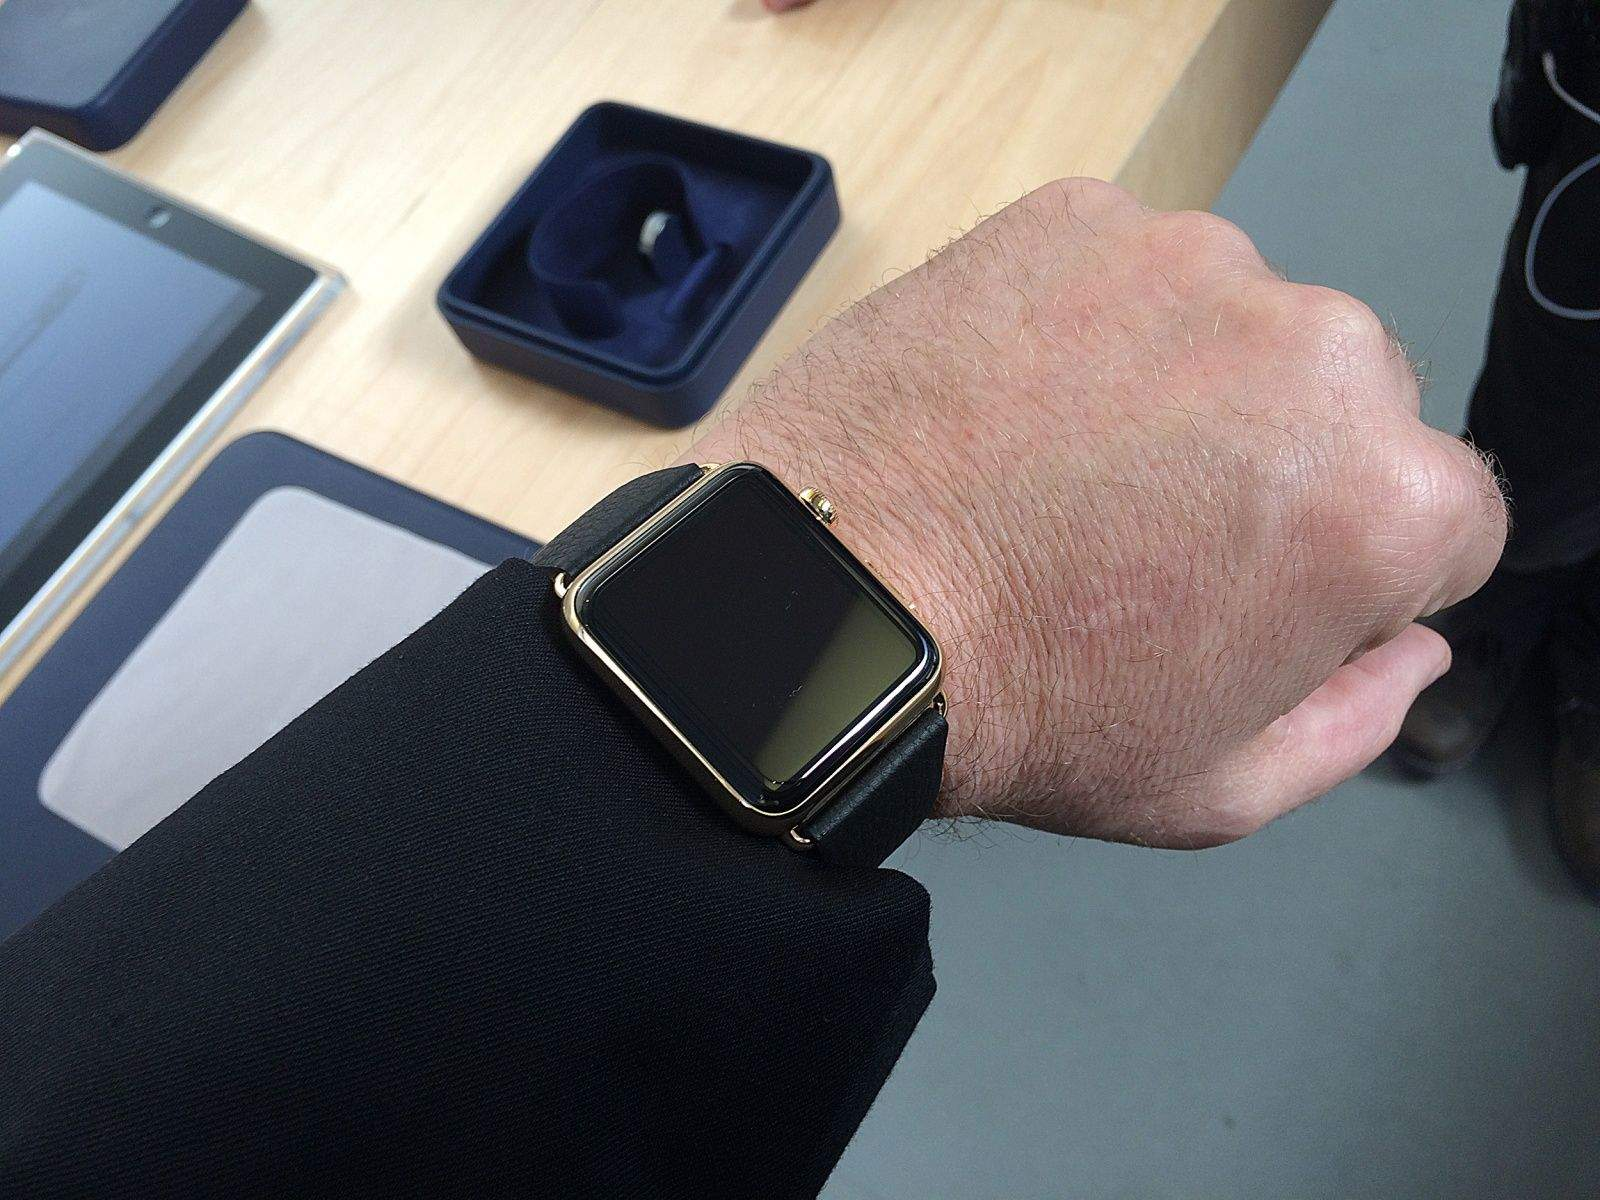 The $10,000 gold Apple Watch Edition, the first and only time I will probably every wear an expensive timepiece.